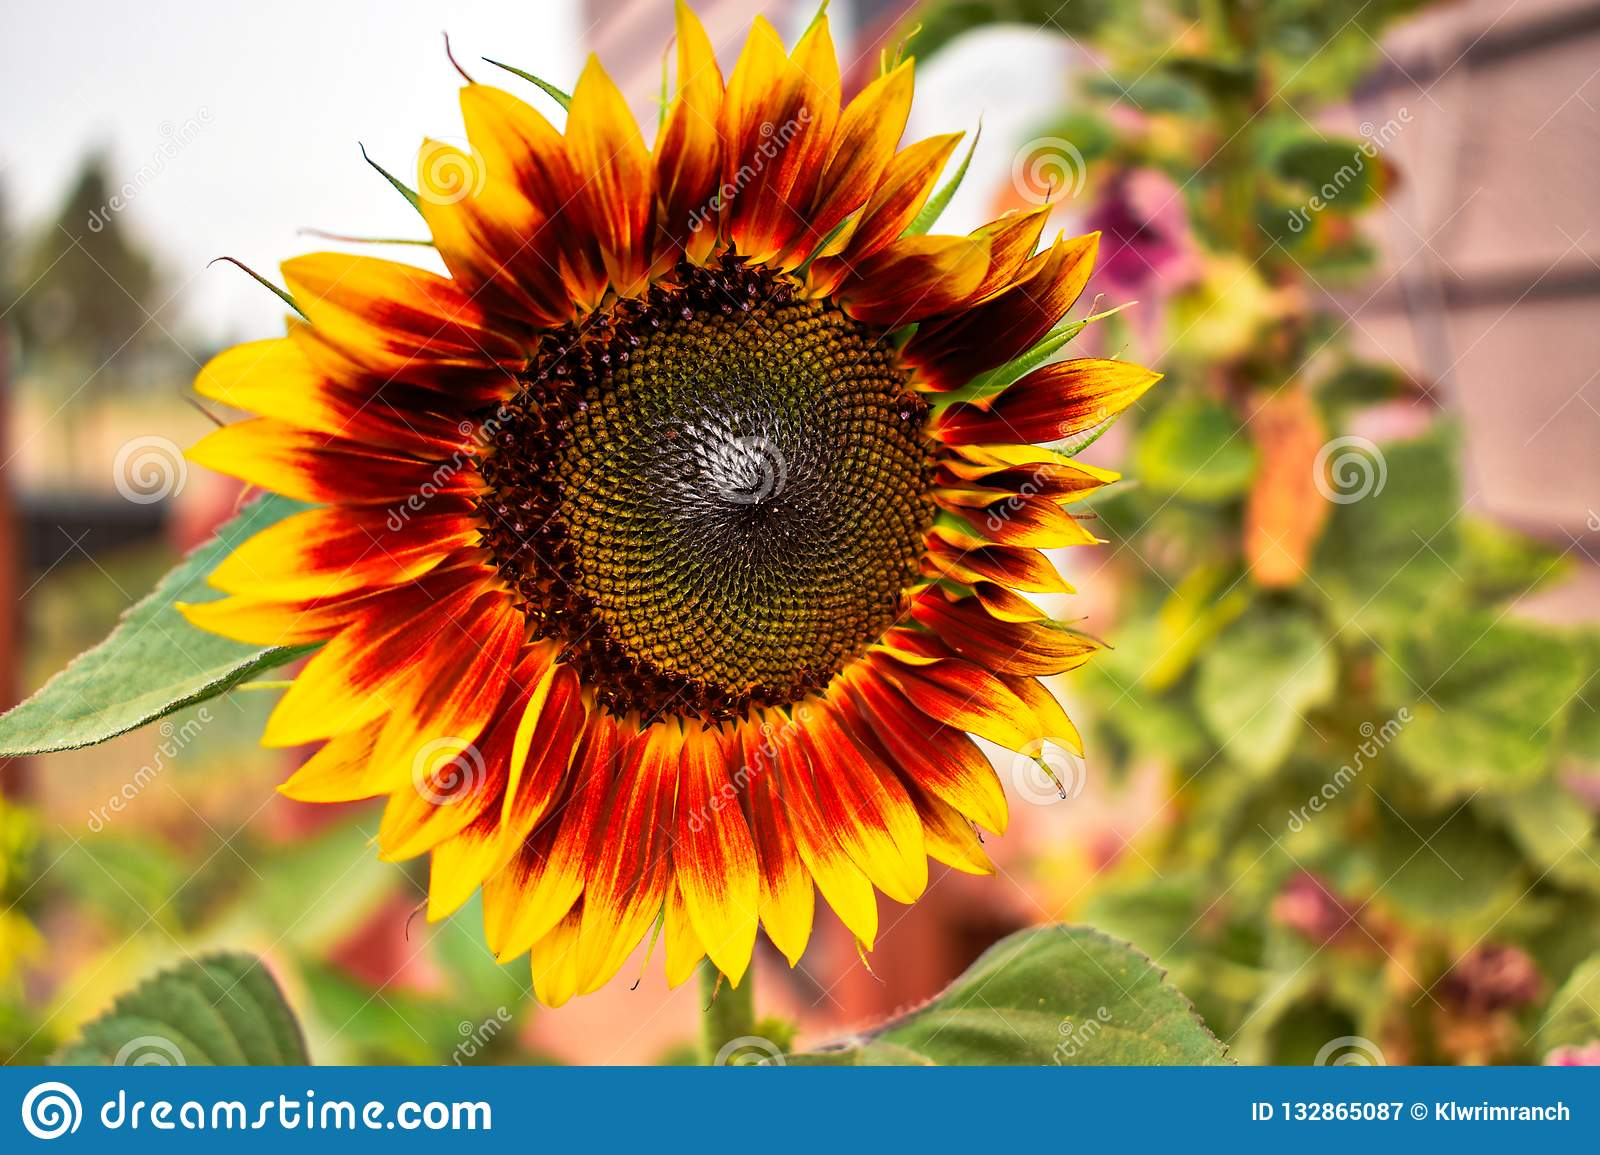 Yellow And Brown Summer Sunflowers Stock Image - Image of ...